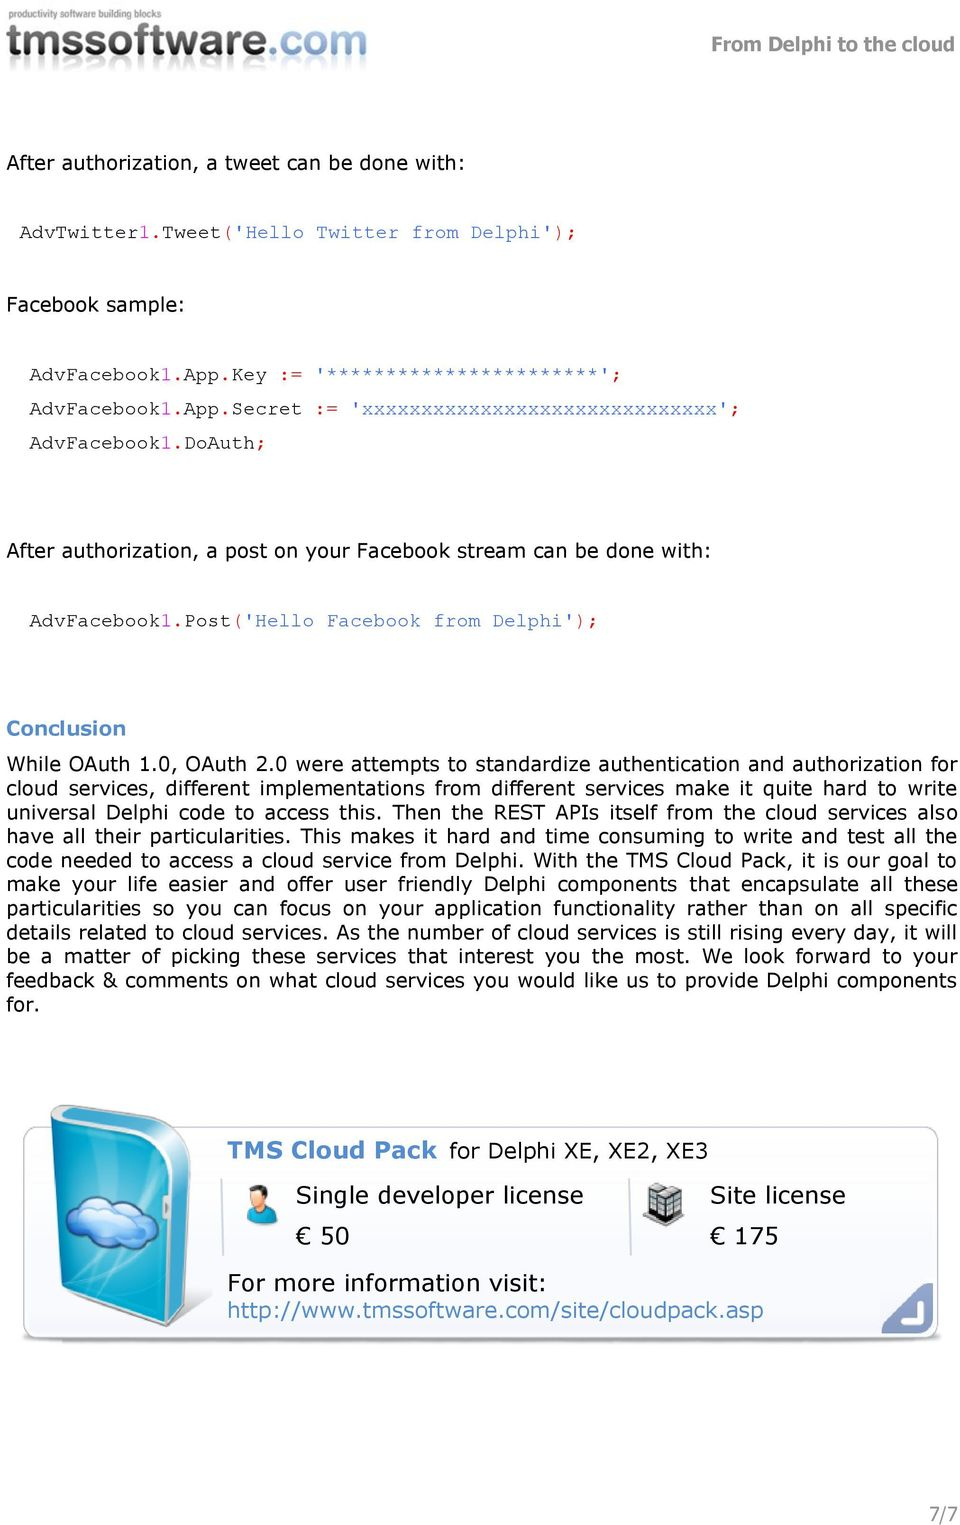 From Delphi to the cloud - PDF